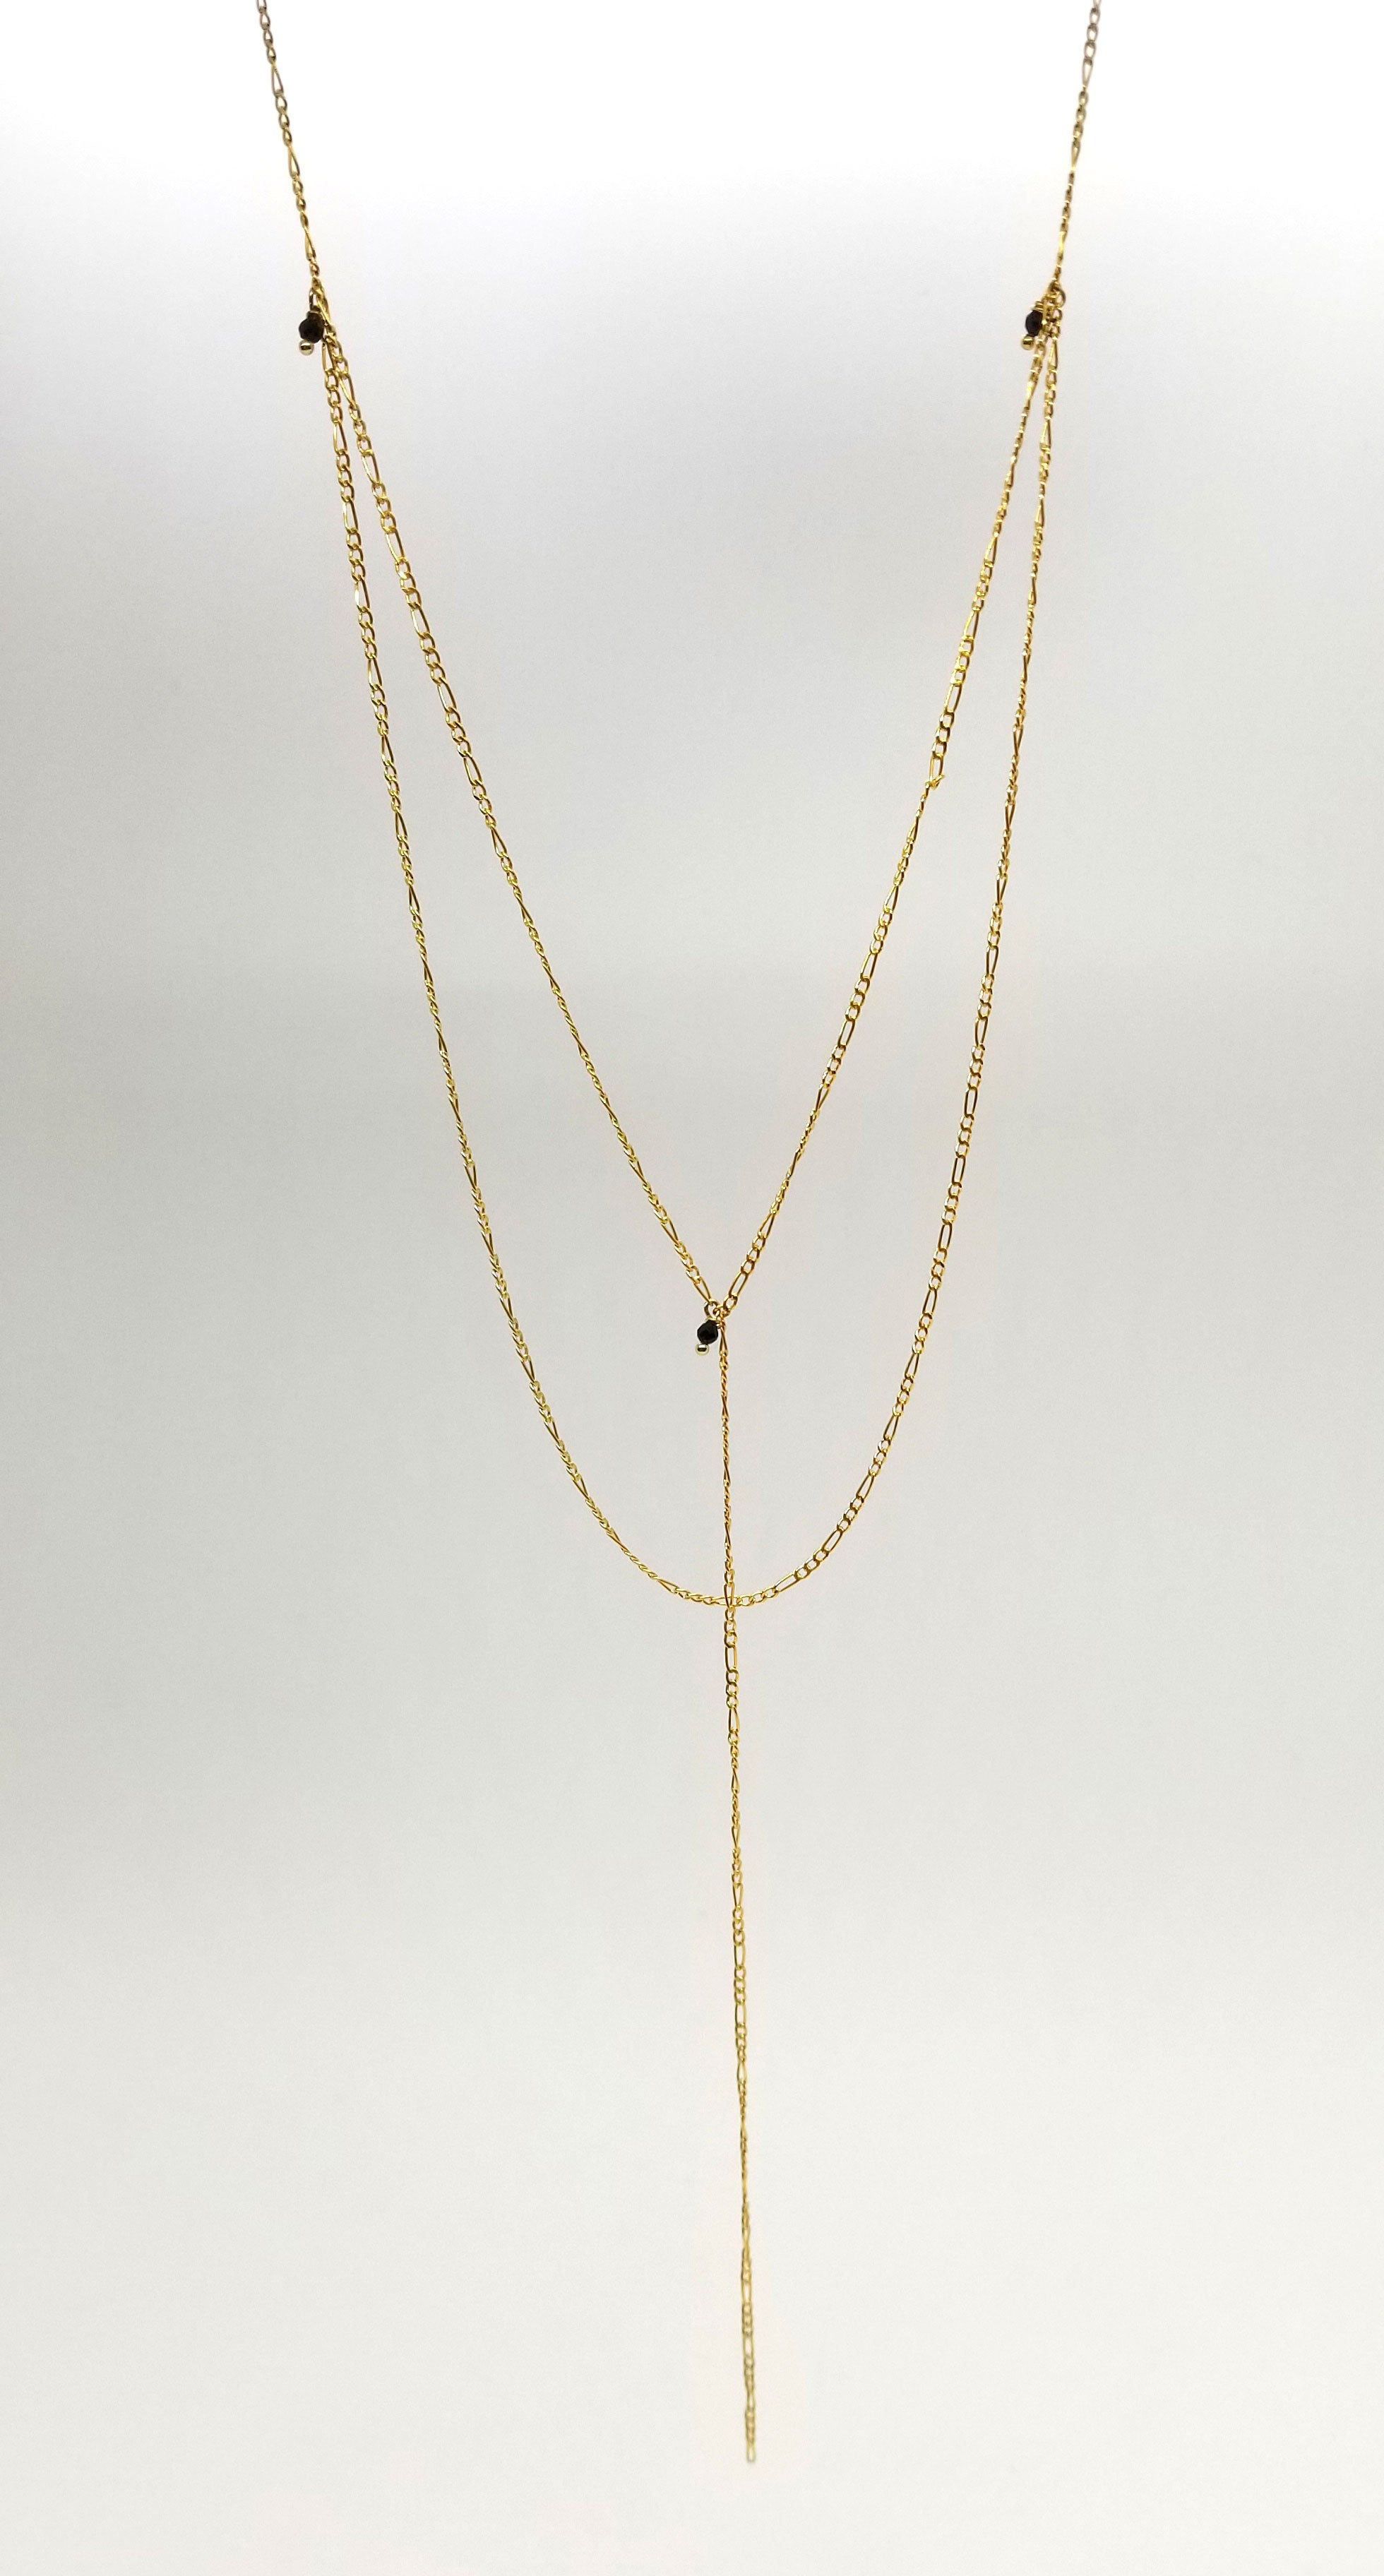 The Dobbelt Layer Gold Necklace